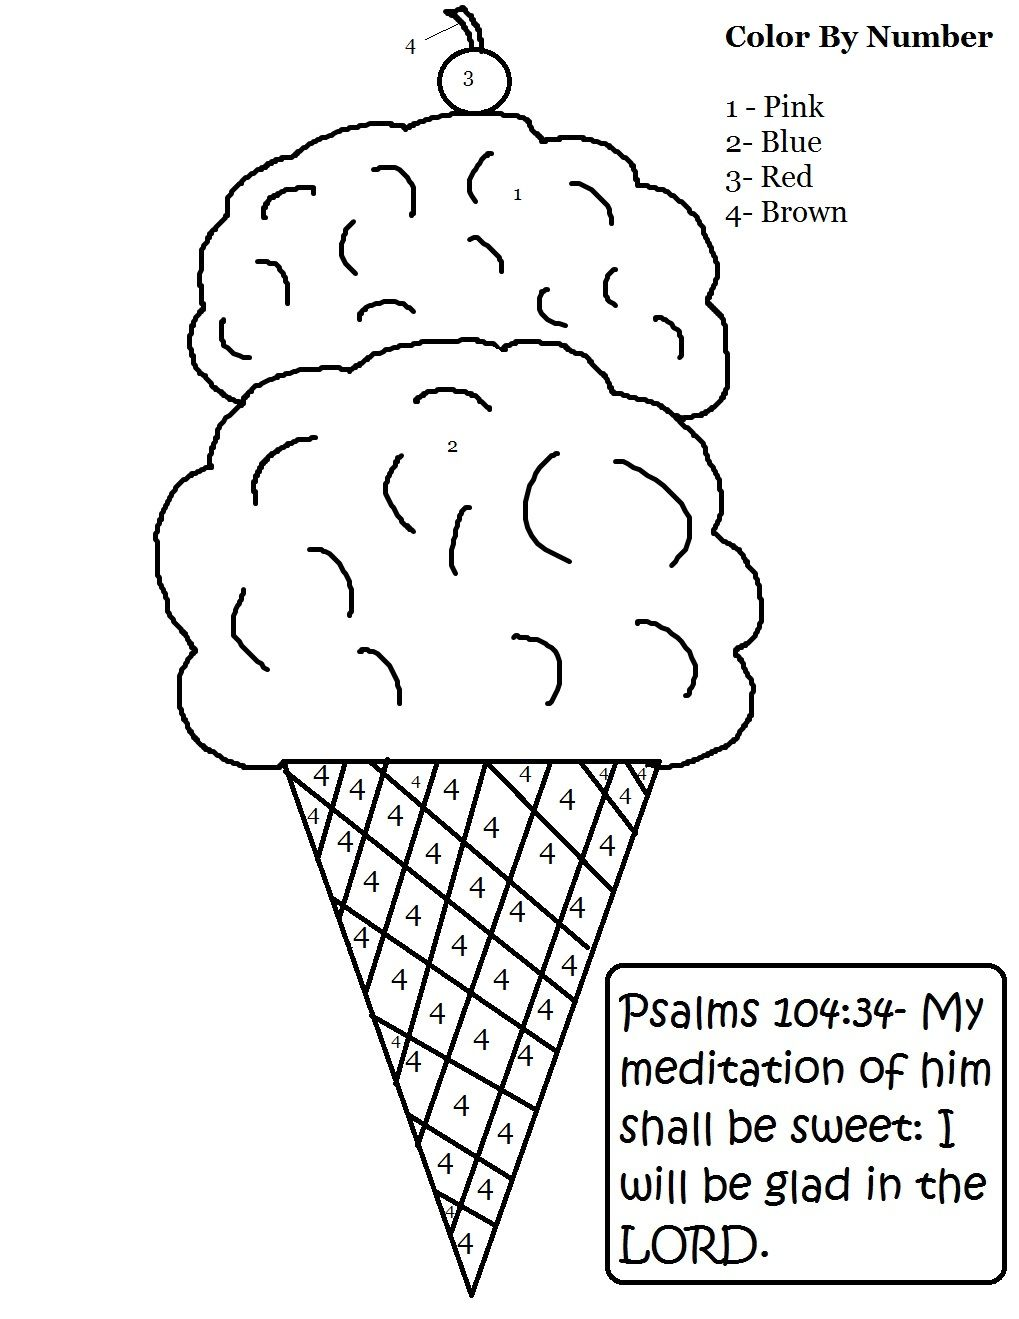 Ice Cream Color By Number.jpg (1019×1319) | Sunday school ...